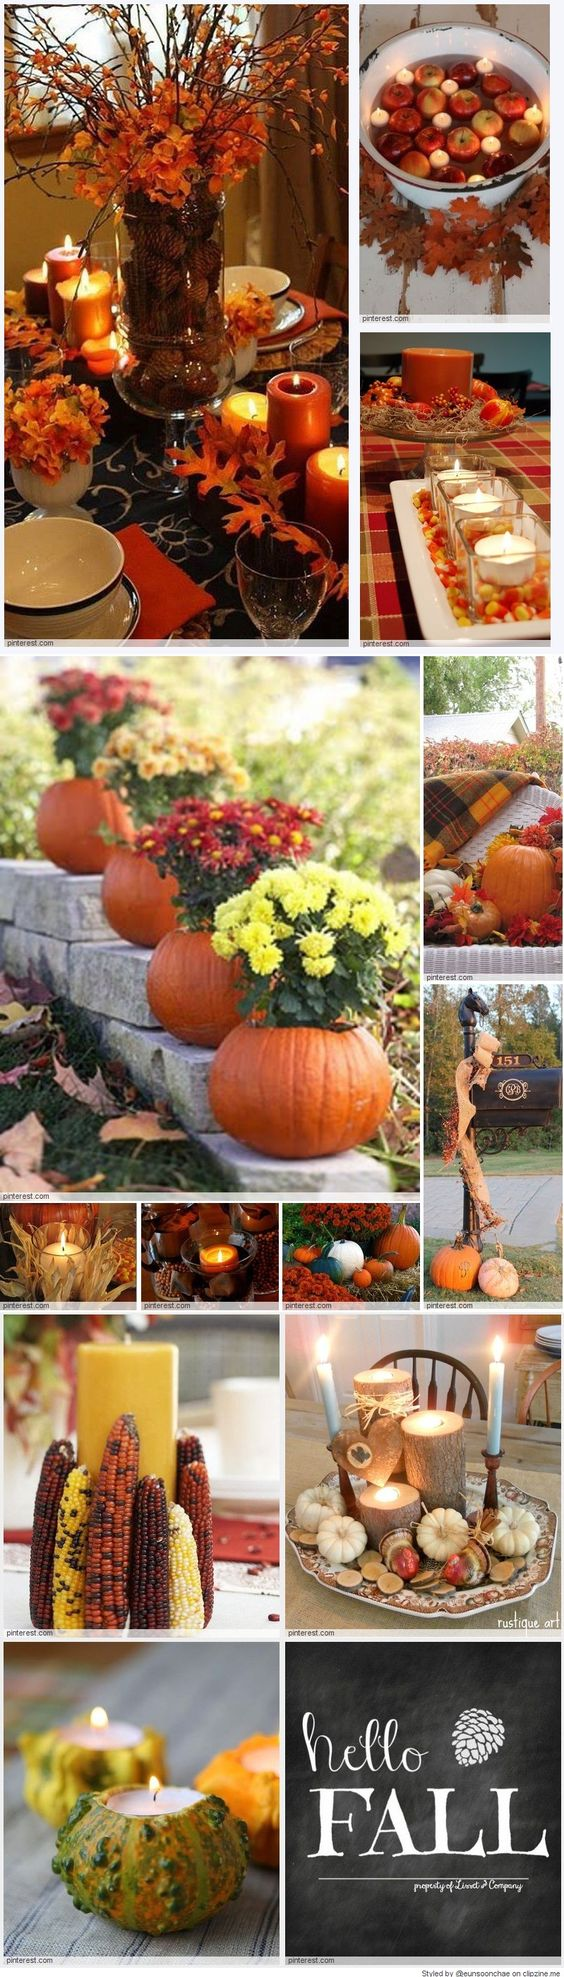 Fall Decorating Ideas that you can use for all your Thanksgiving festivities and family parties. These are beautiful fall tablescapes. Great Thanksgiving ideas.: